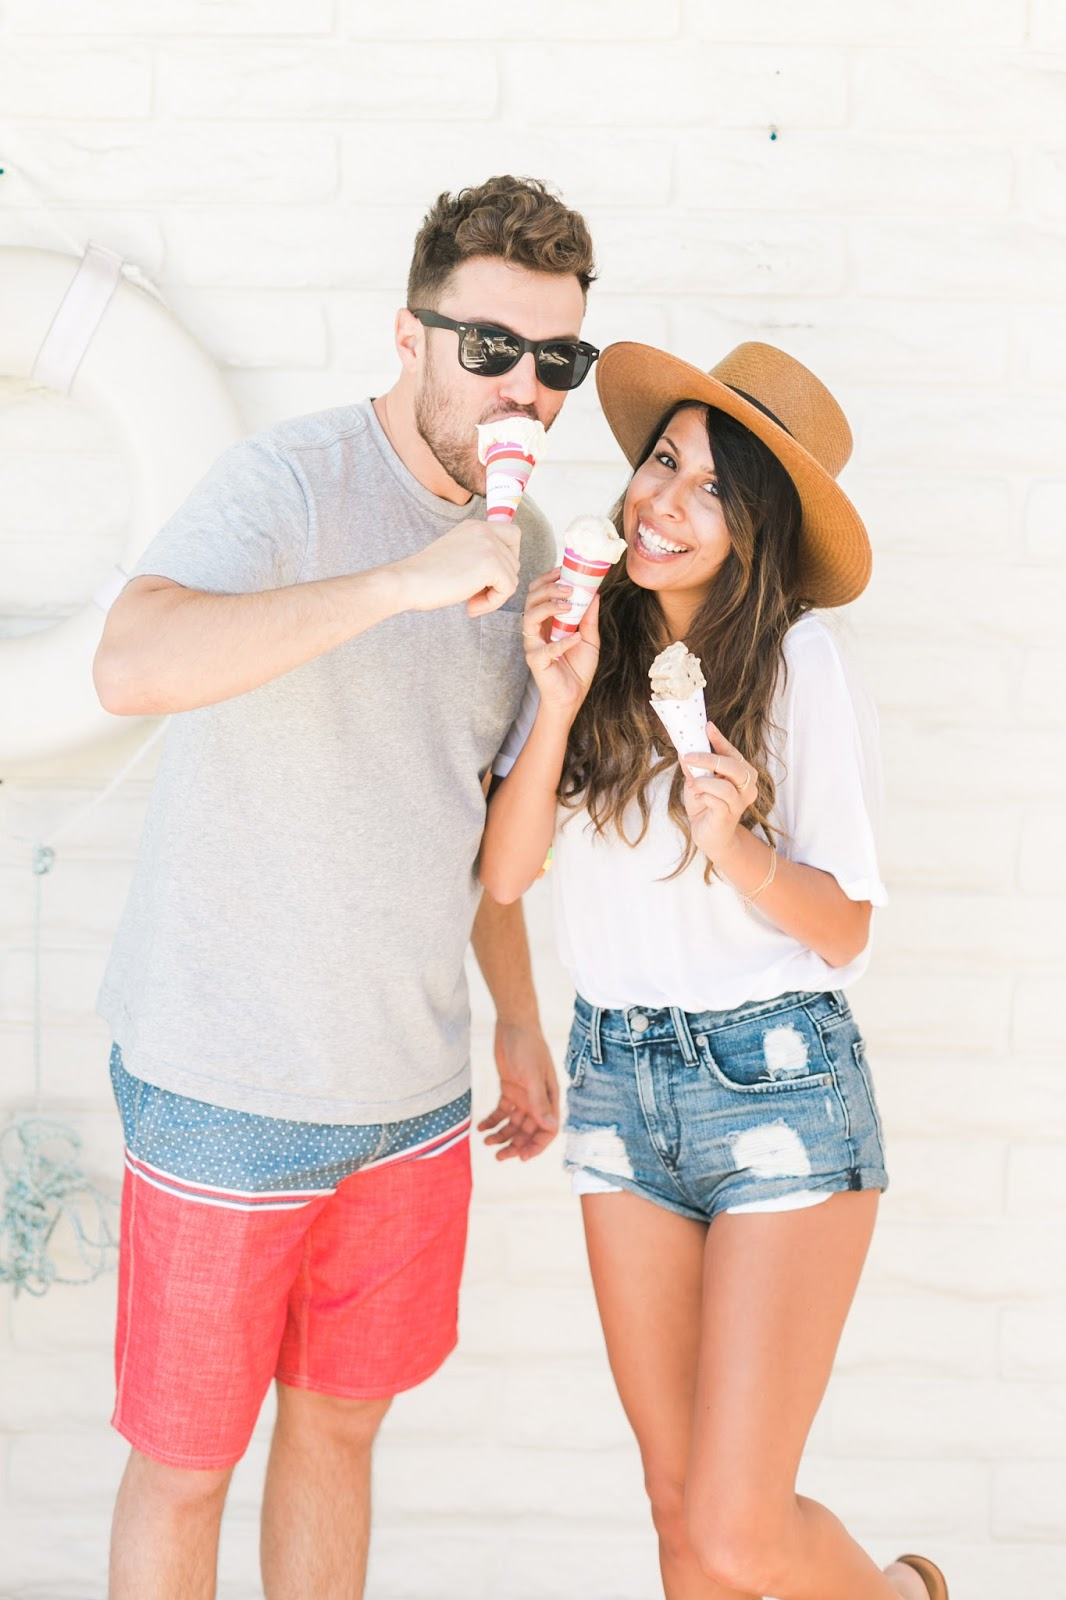 palm springs birthday, personalized ice cream cone, birthday party ideas, pursuit of shoes